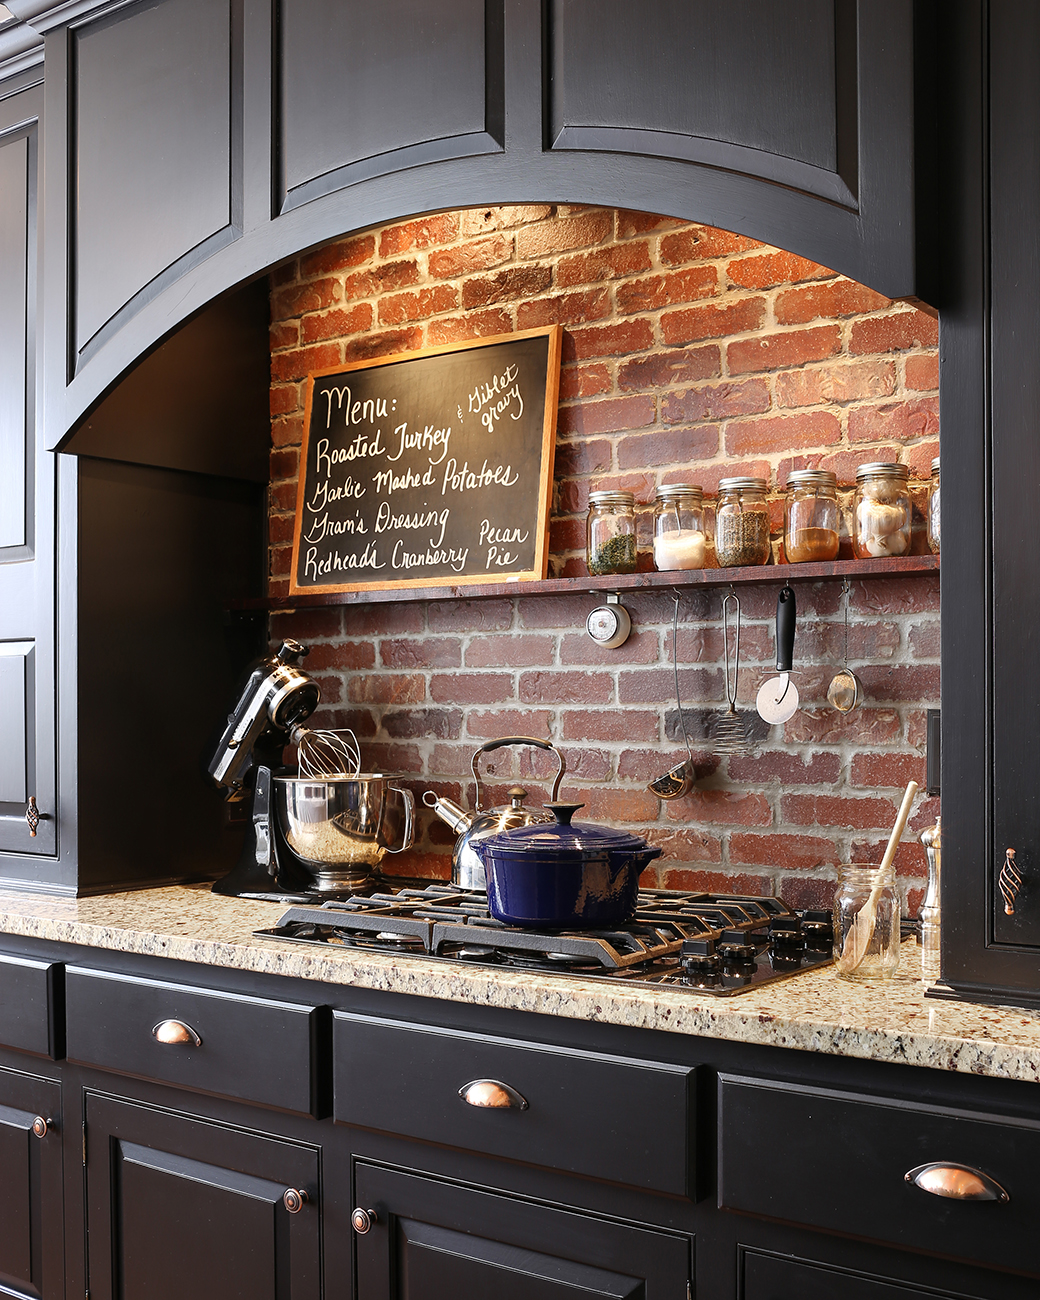 Self Made Cabinets Kept Costs Down In This Kitchen Makeover: House Tour: DIY Style With Dark Woods & Natural Touches